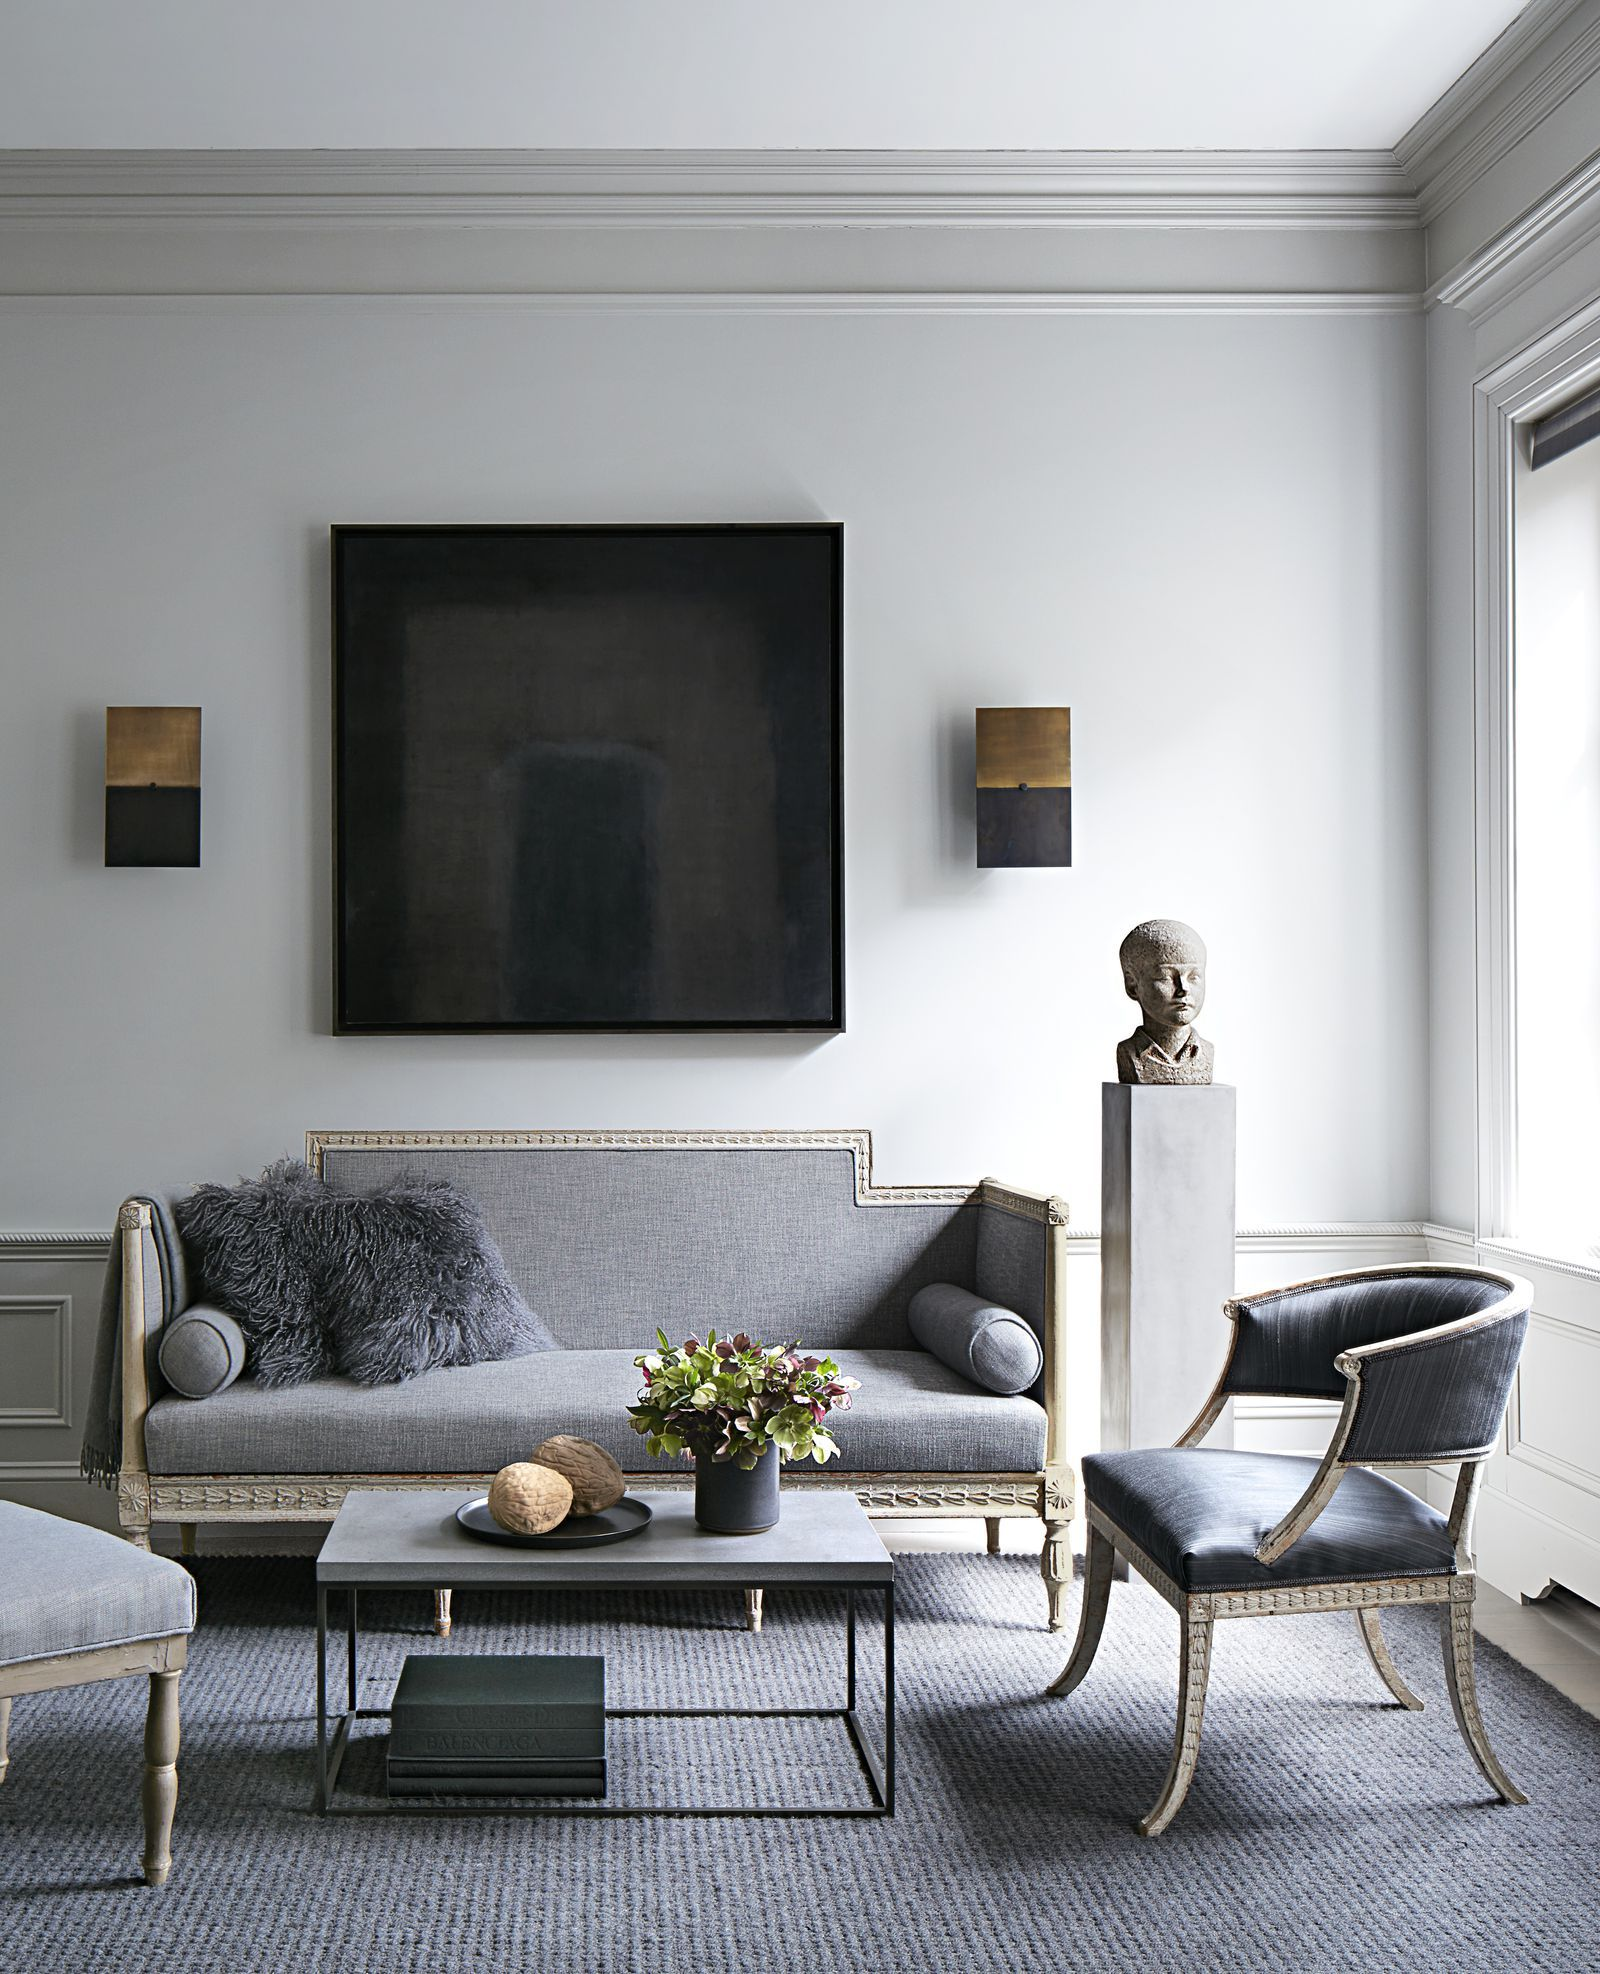 How A Minimalist West Village Townhouse Is Given A Sensuous New Life